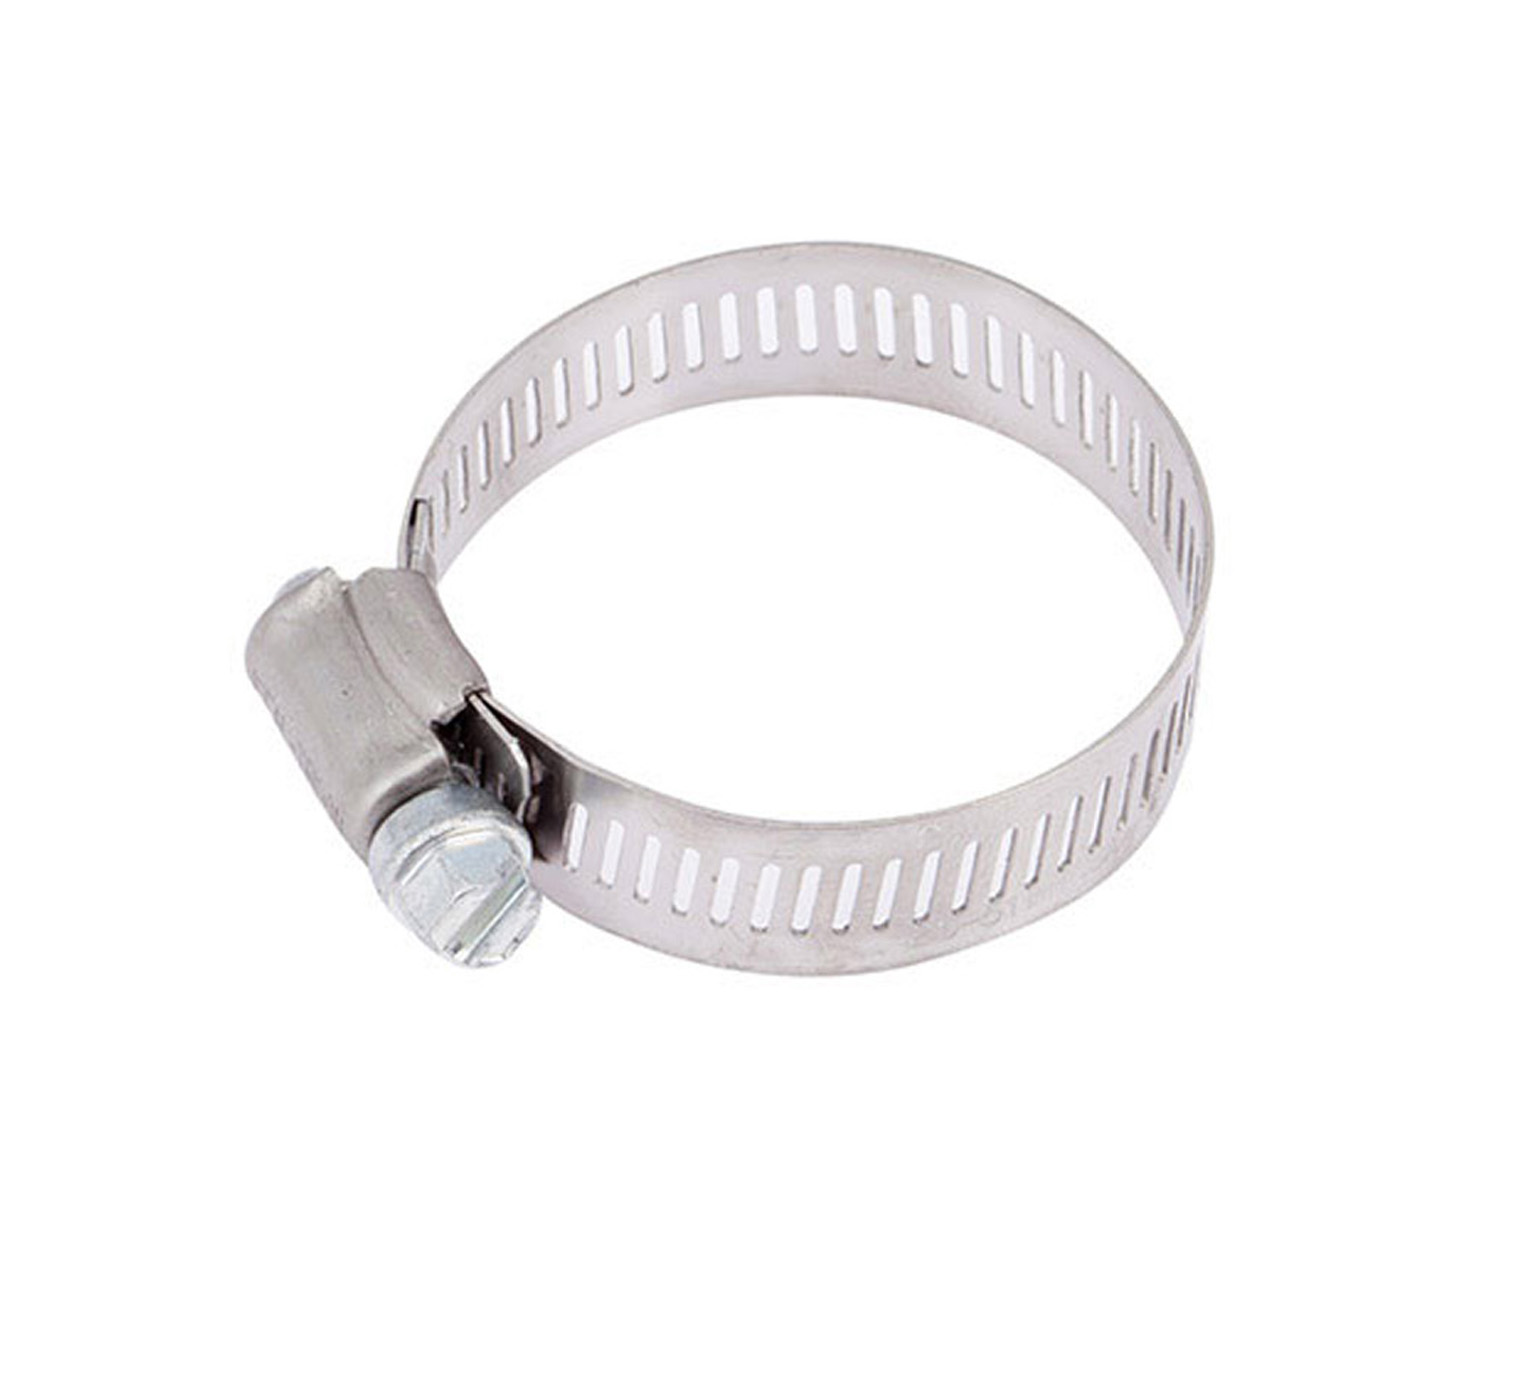 11531 Stainless Steel Hose Clamp - 1.06 -2 in x 0.5 in alt 1